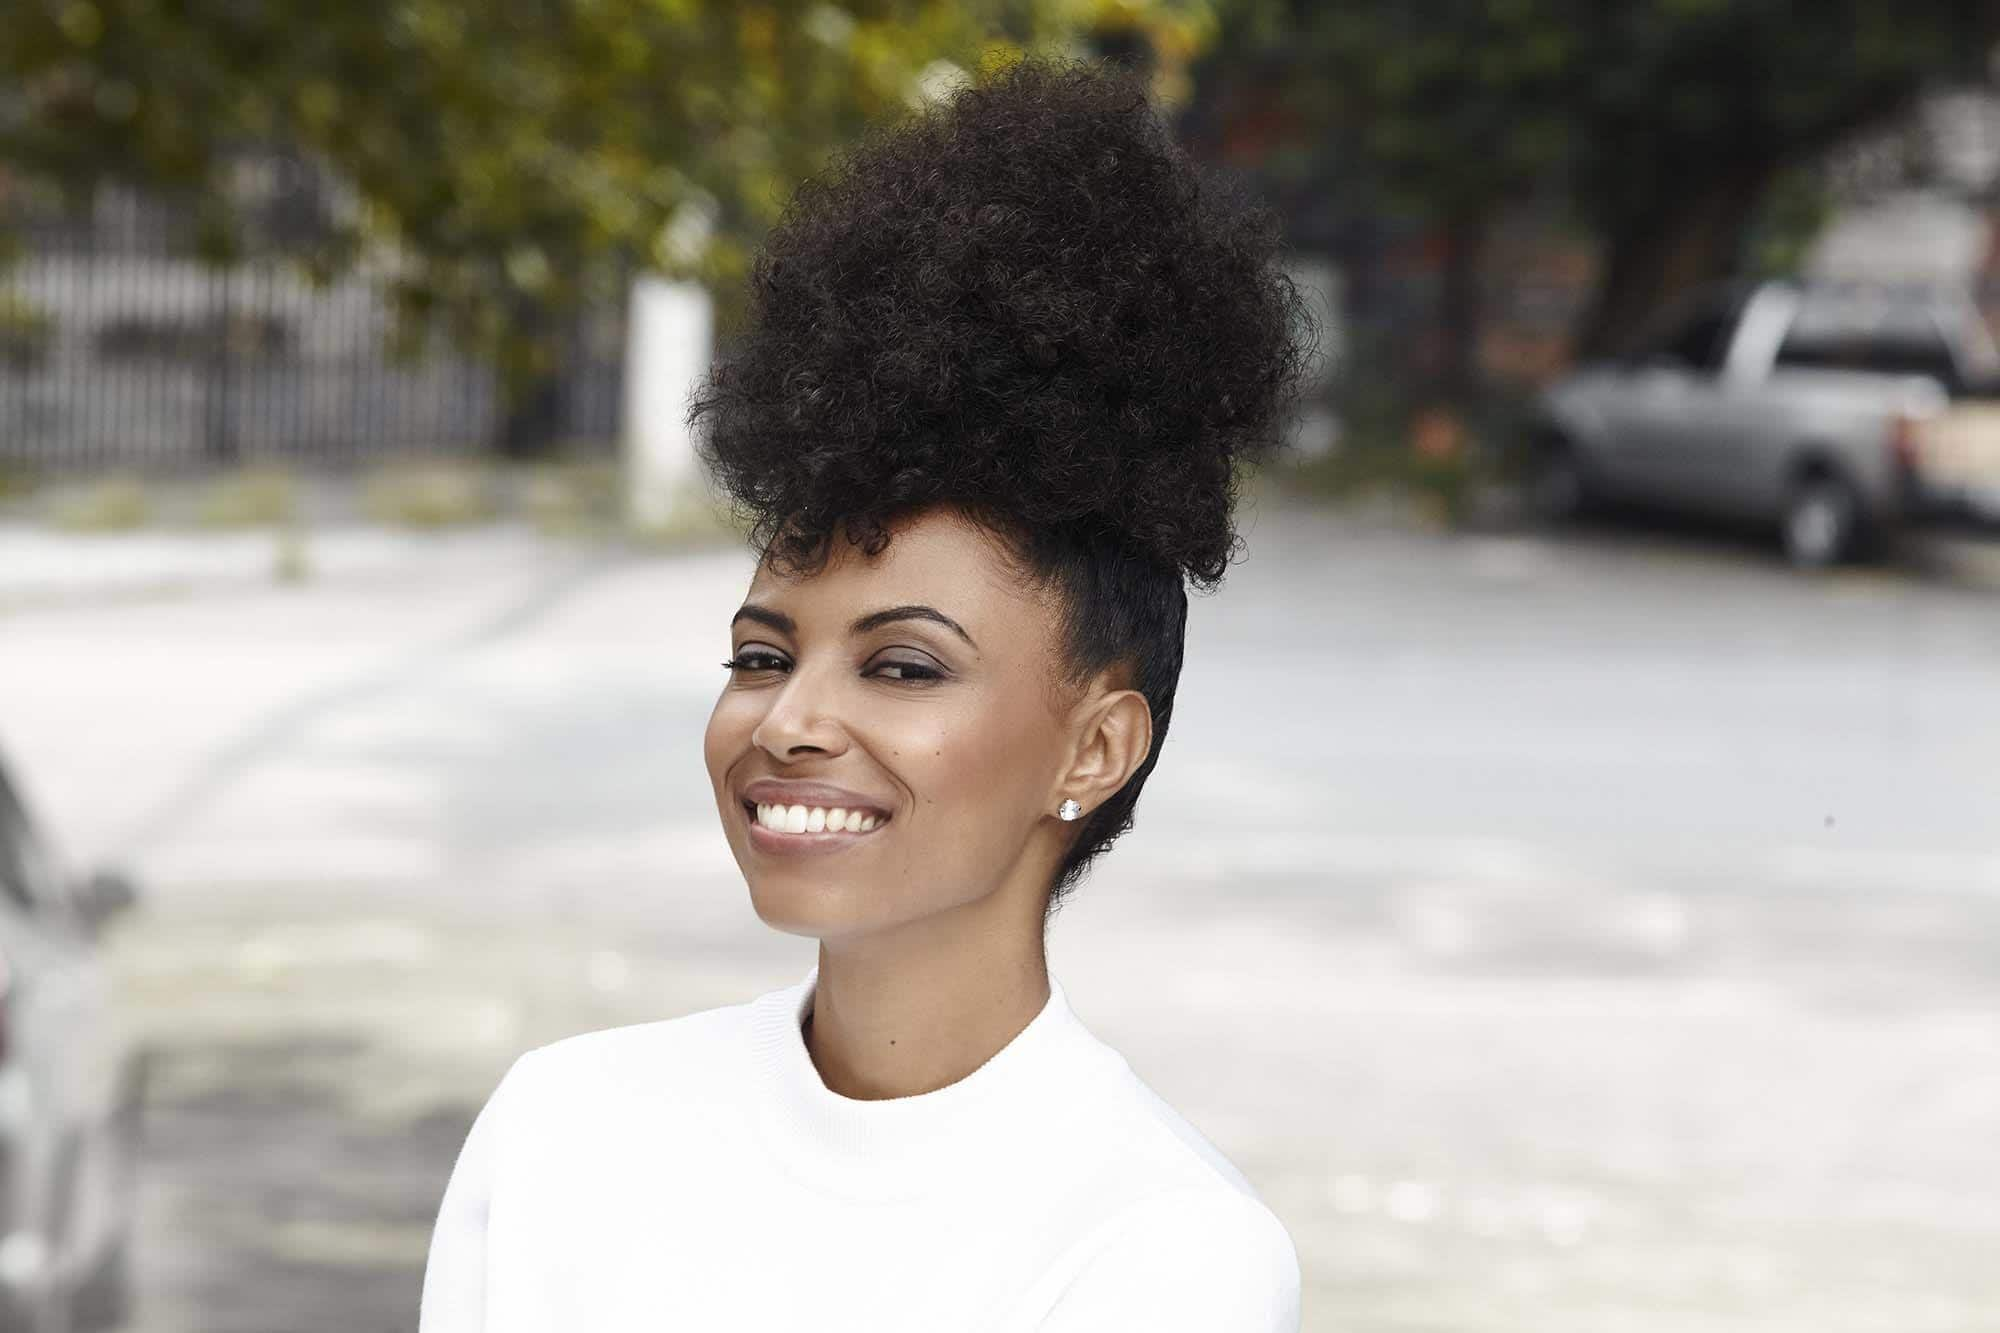 styling ideas for hair afro hairstyles and hair trends plus afro hair styling tips 7502